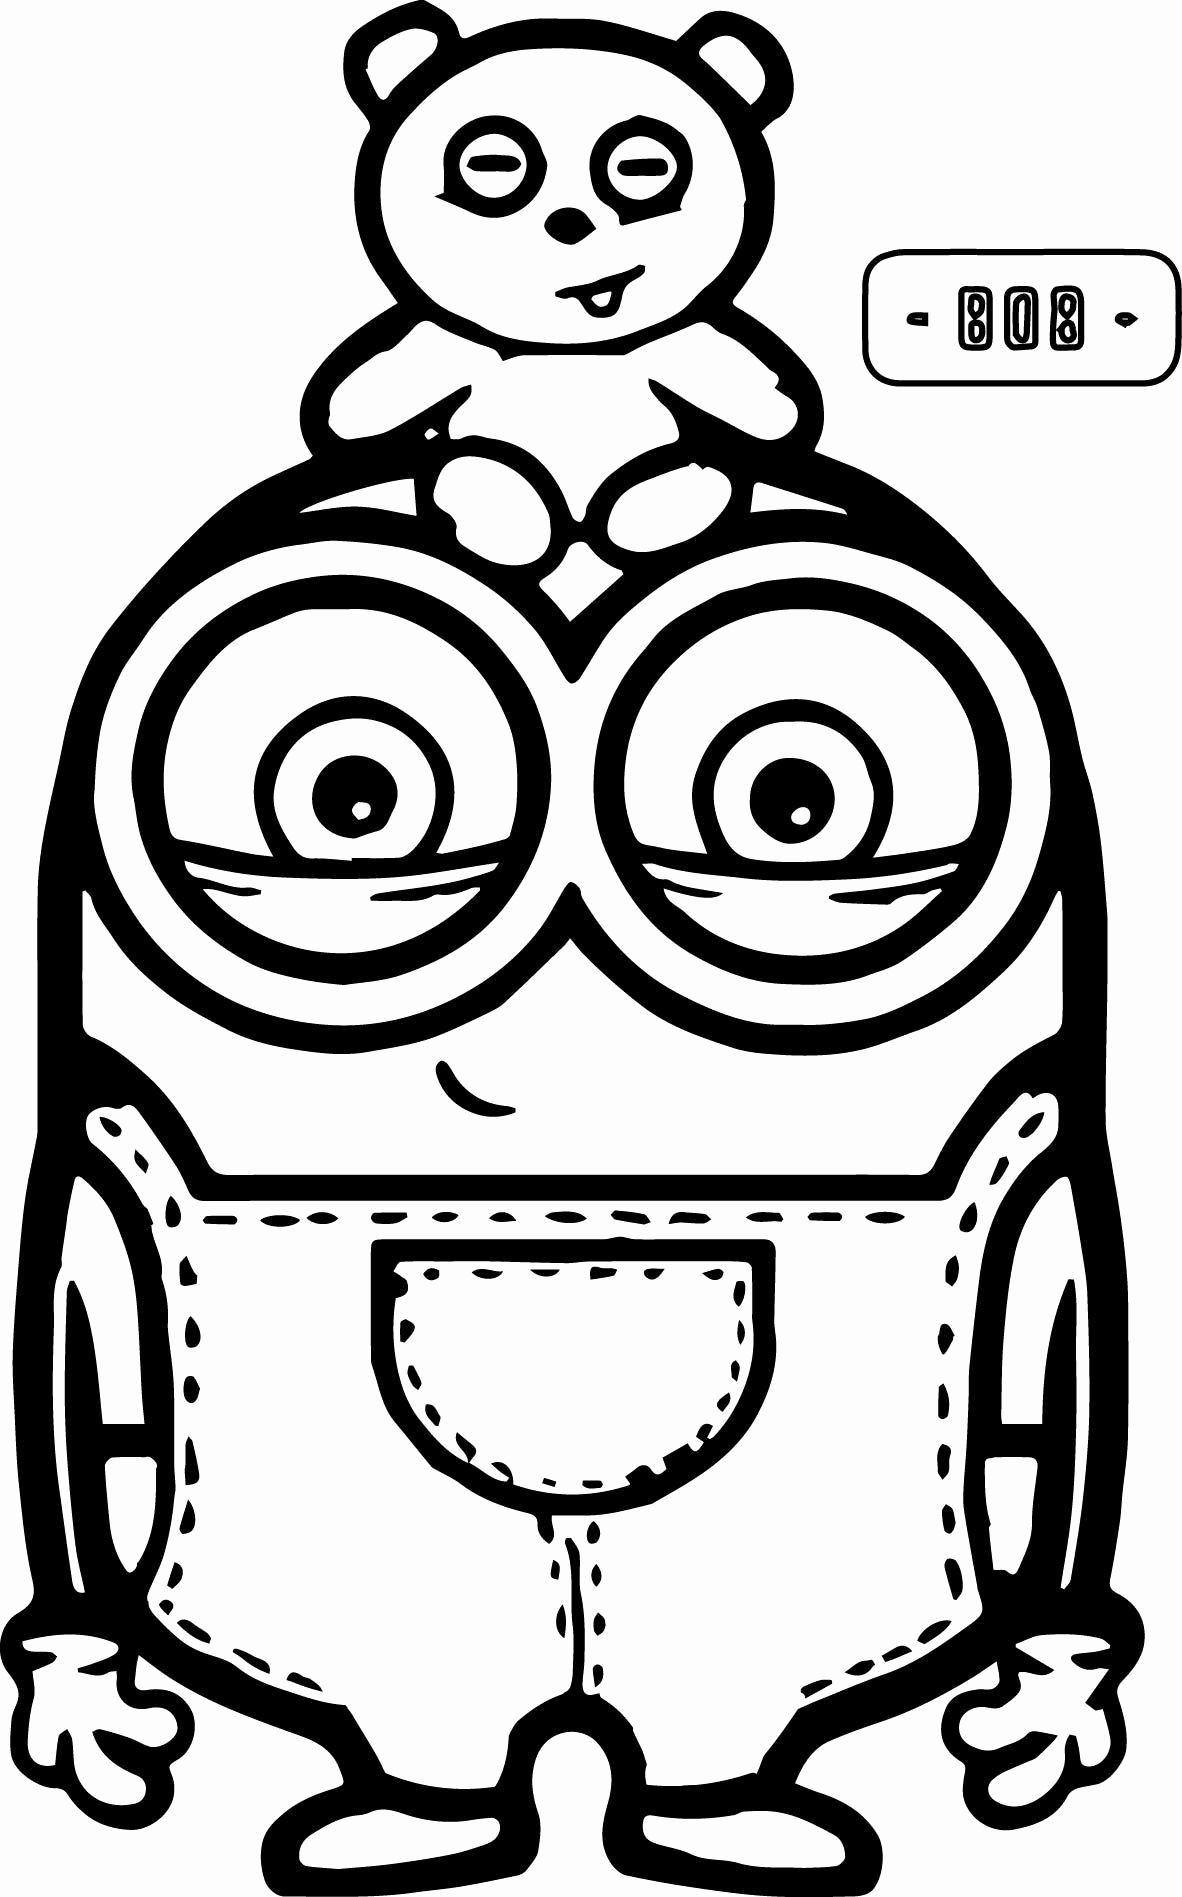 Minions Coloring Pages Fresh Cute Bob And Bear Minions Coloring Page Minion Coloring Pages Minions Coloring Pages Cute Coloring Pages